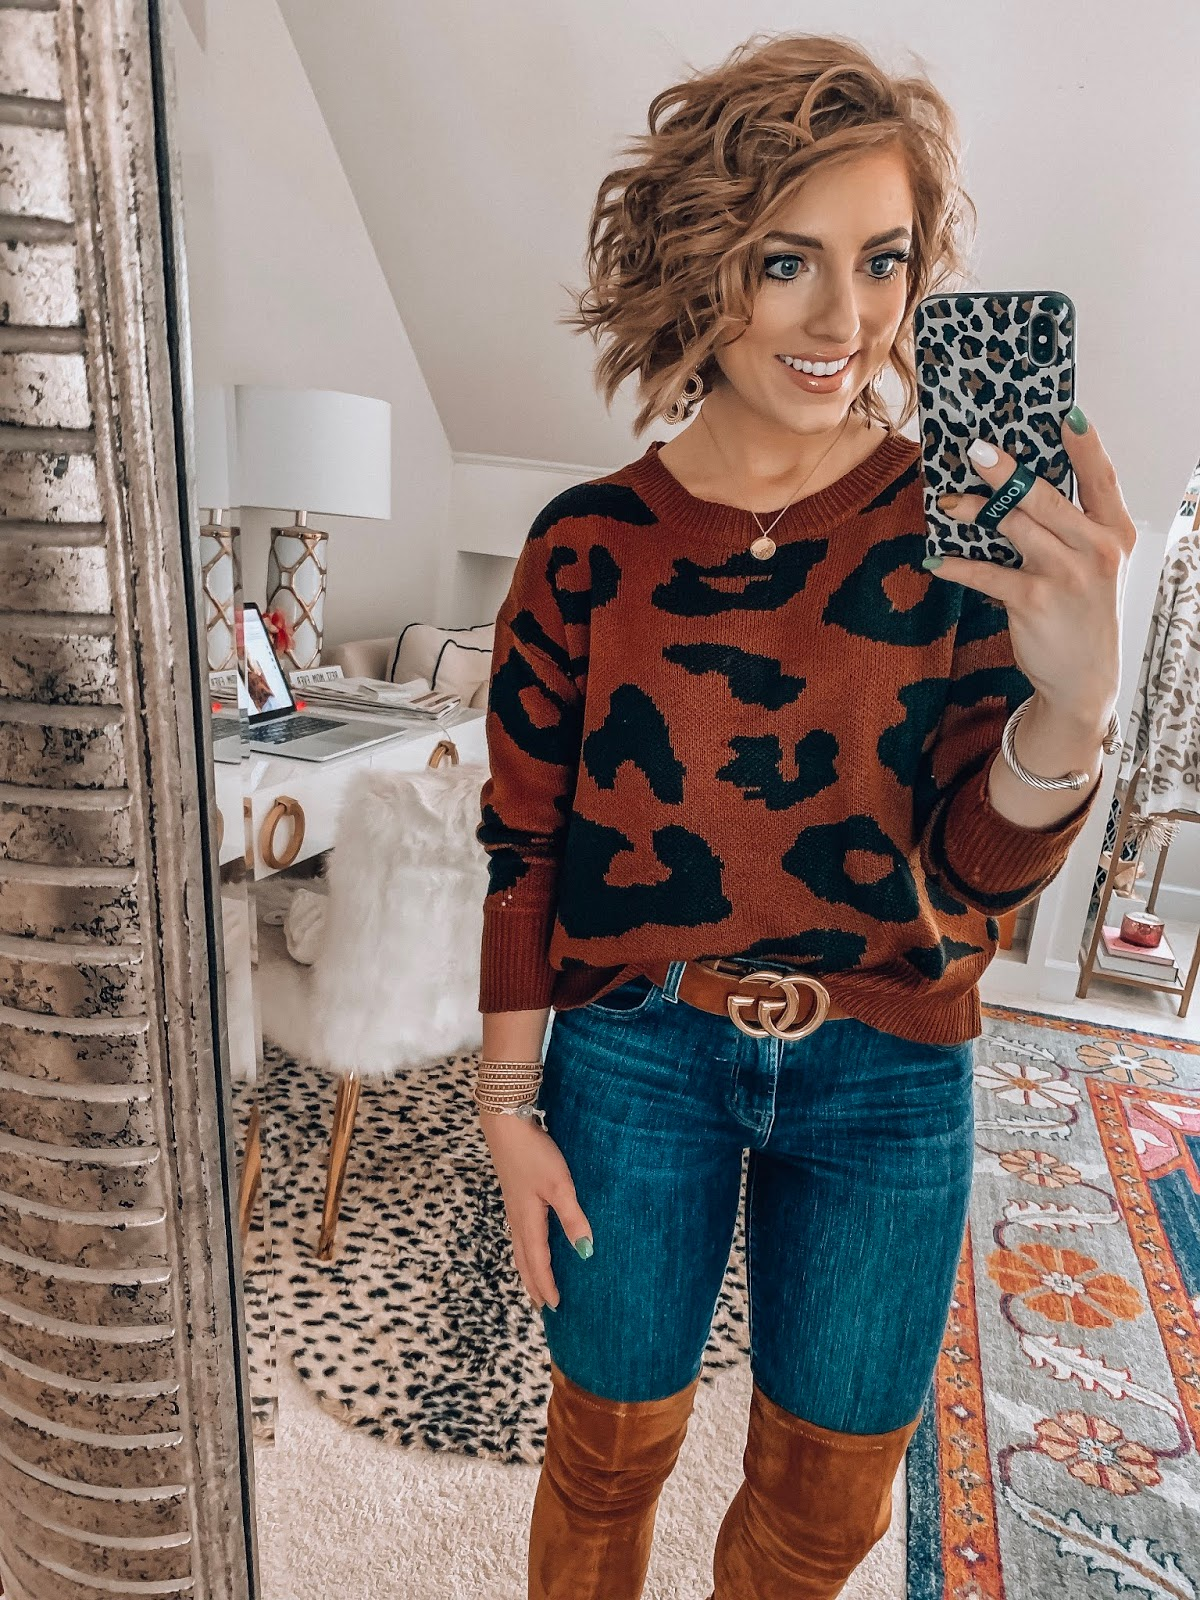 Recent Amazon Finds: Sweaters & Cardigans Edition - $21 leopard sweater - Something Delightful Blog #FallStyle #AmazonFashion #AffordableStyle